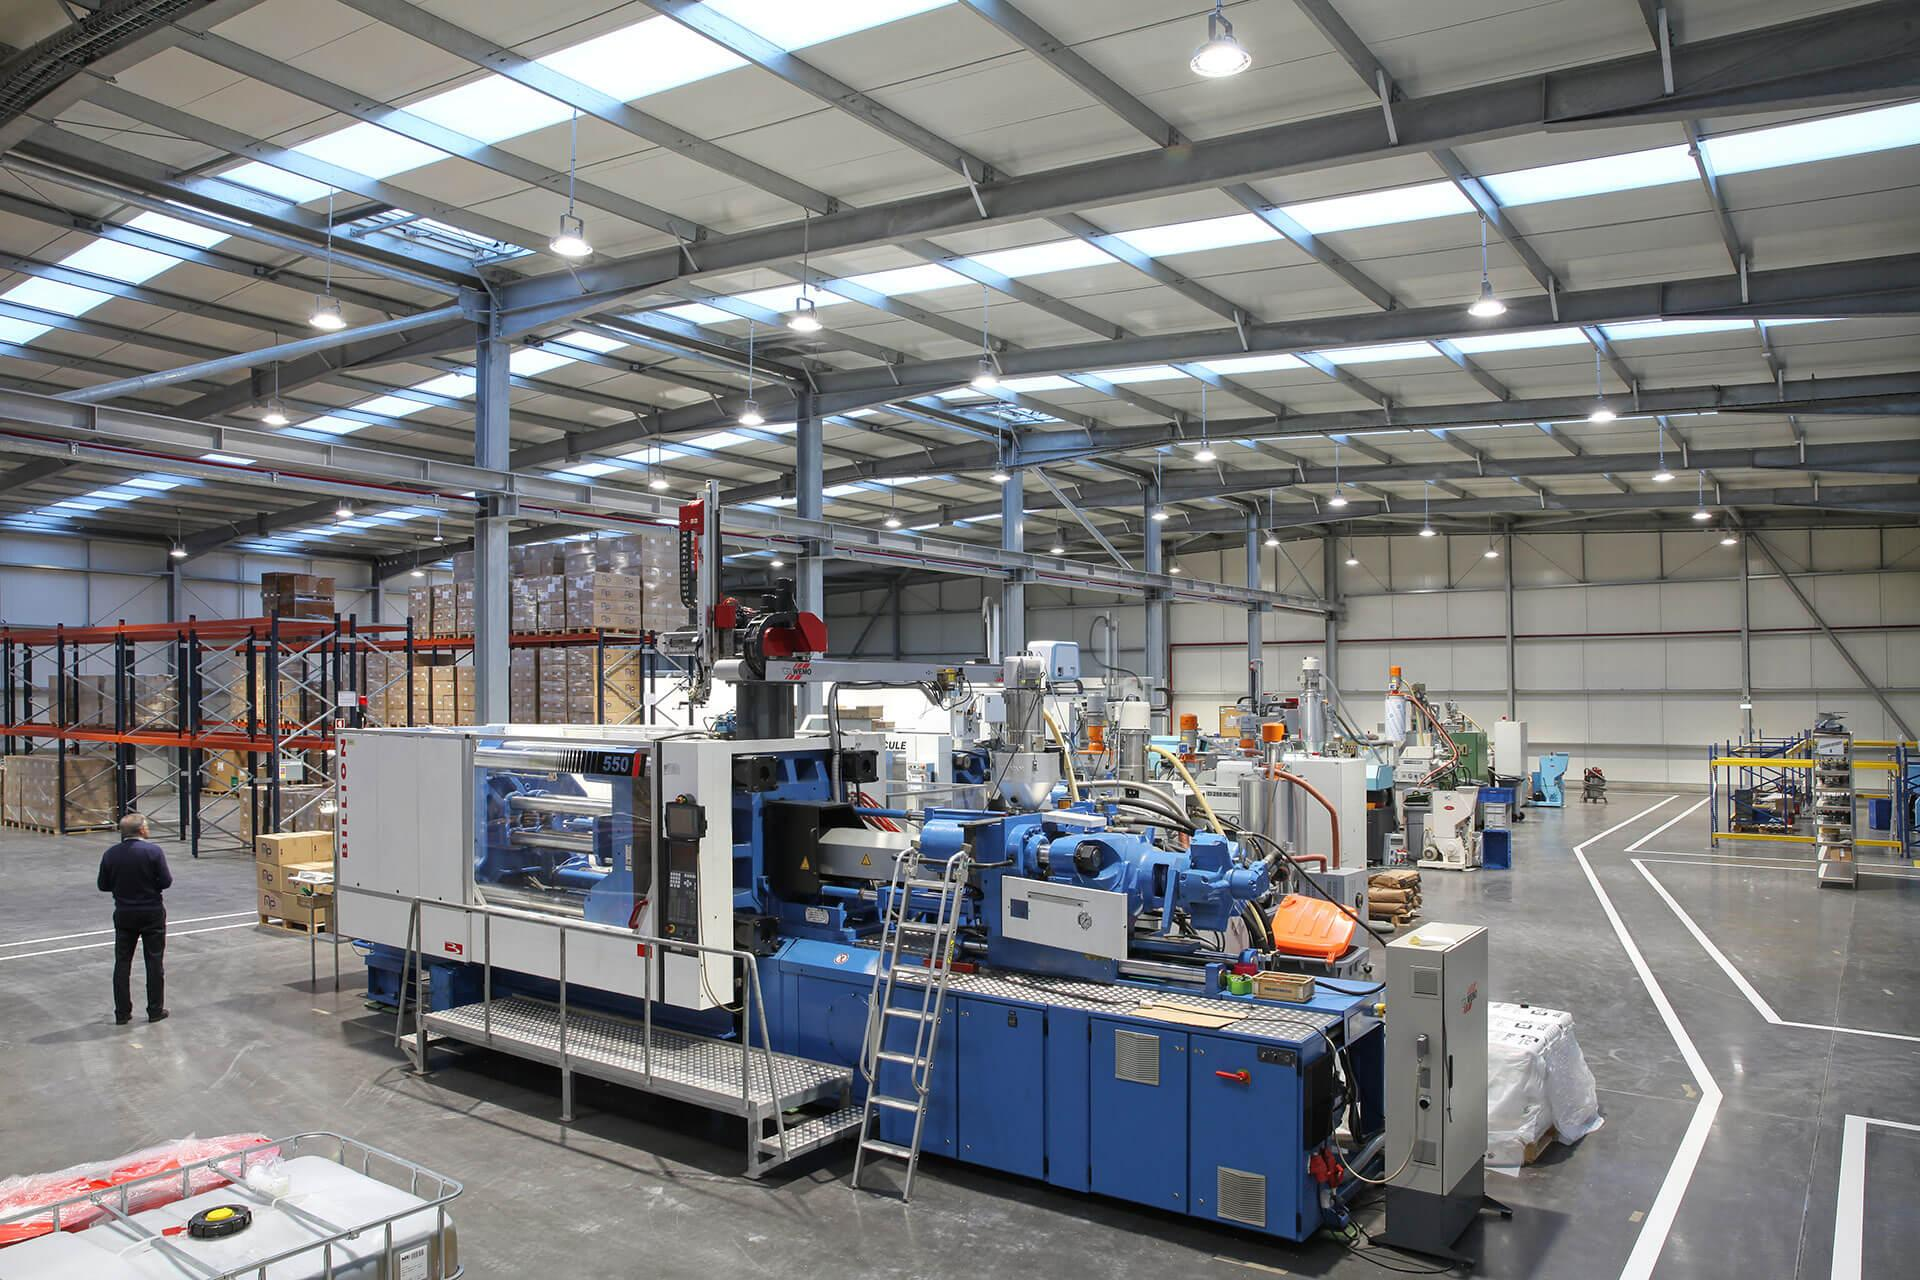 INDU BAY minimises operating costs while ensuring optimal working conditions for Plastifoz